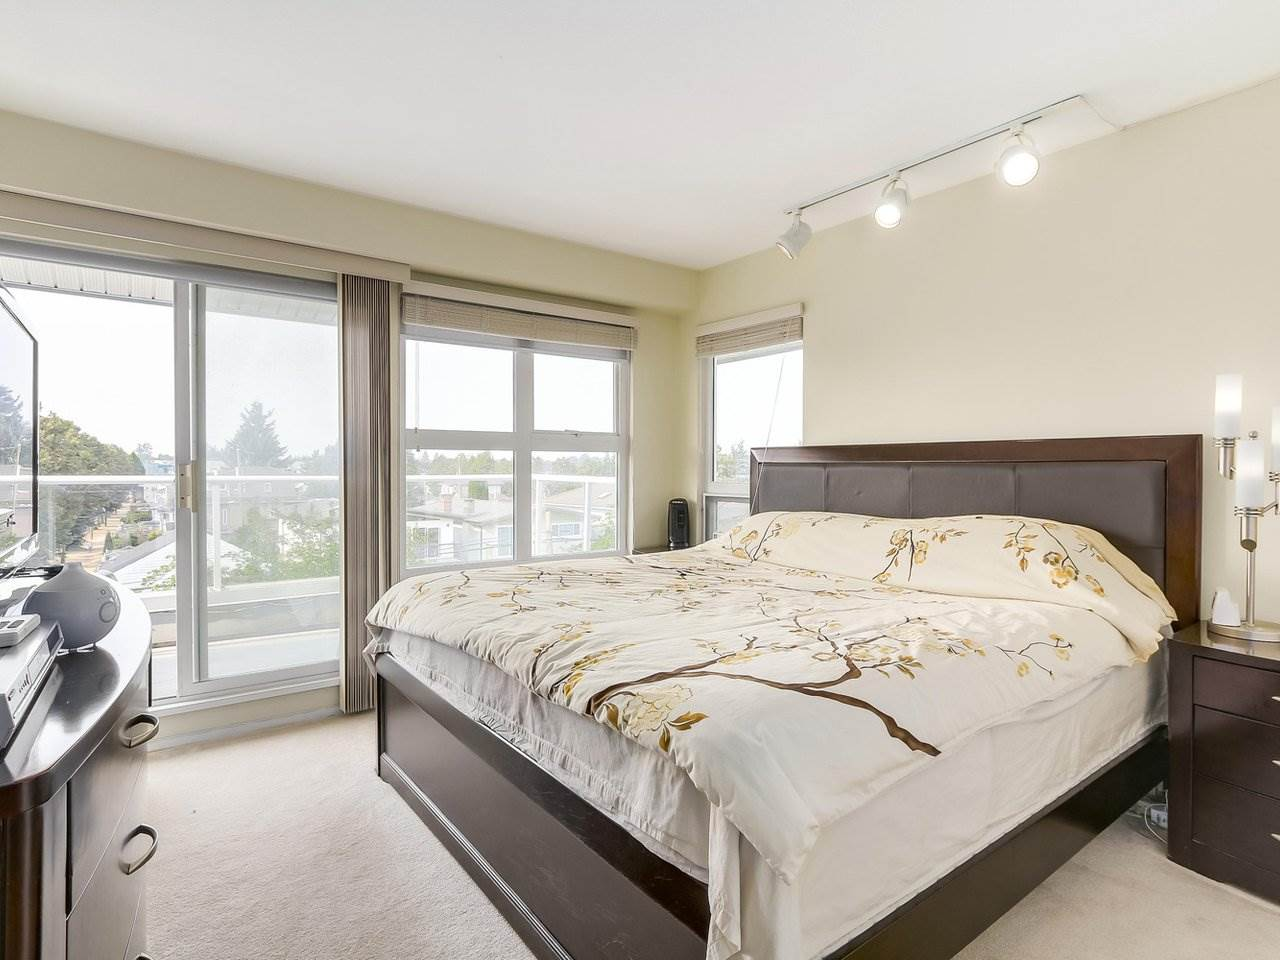 "Photo 10: 405 2965 HORLEY Street in Vancouver: Collingwood VE Condo for sale in ""CHERRY HILL"" (Vancouver East)  : MLS® # R2196474"